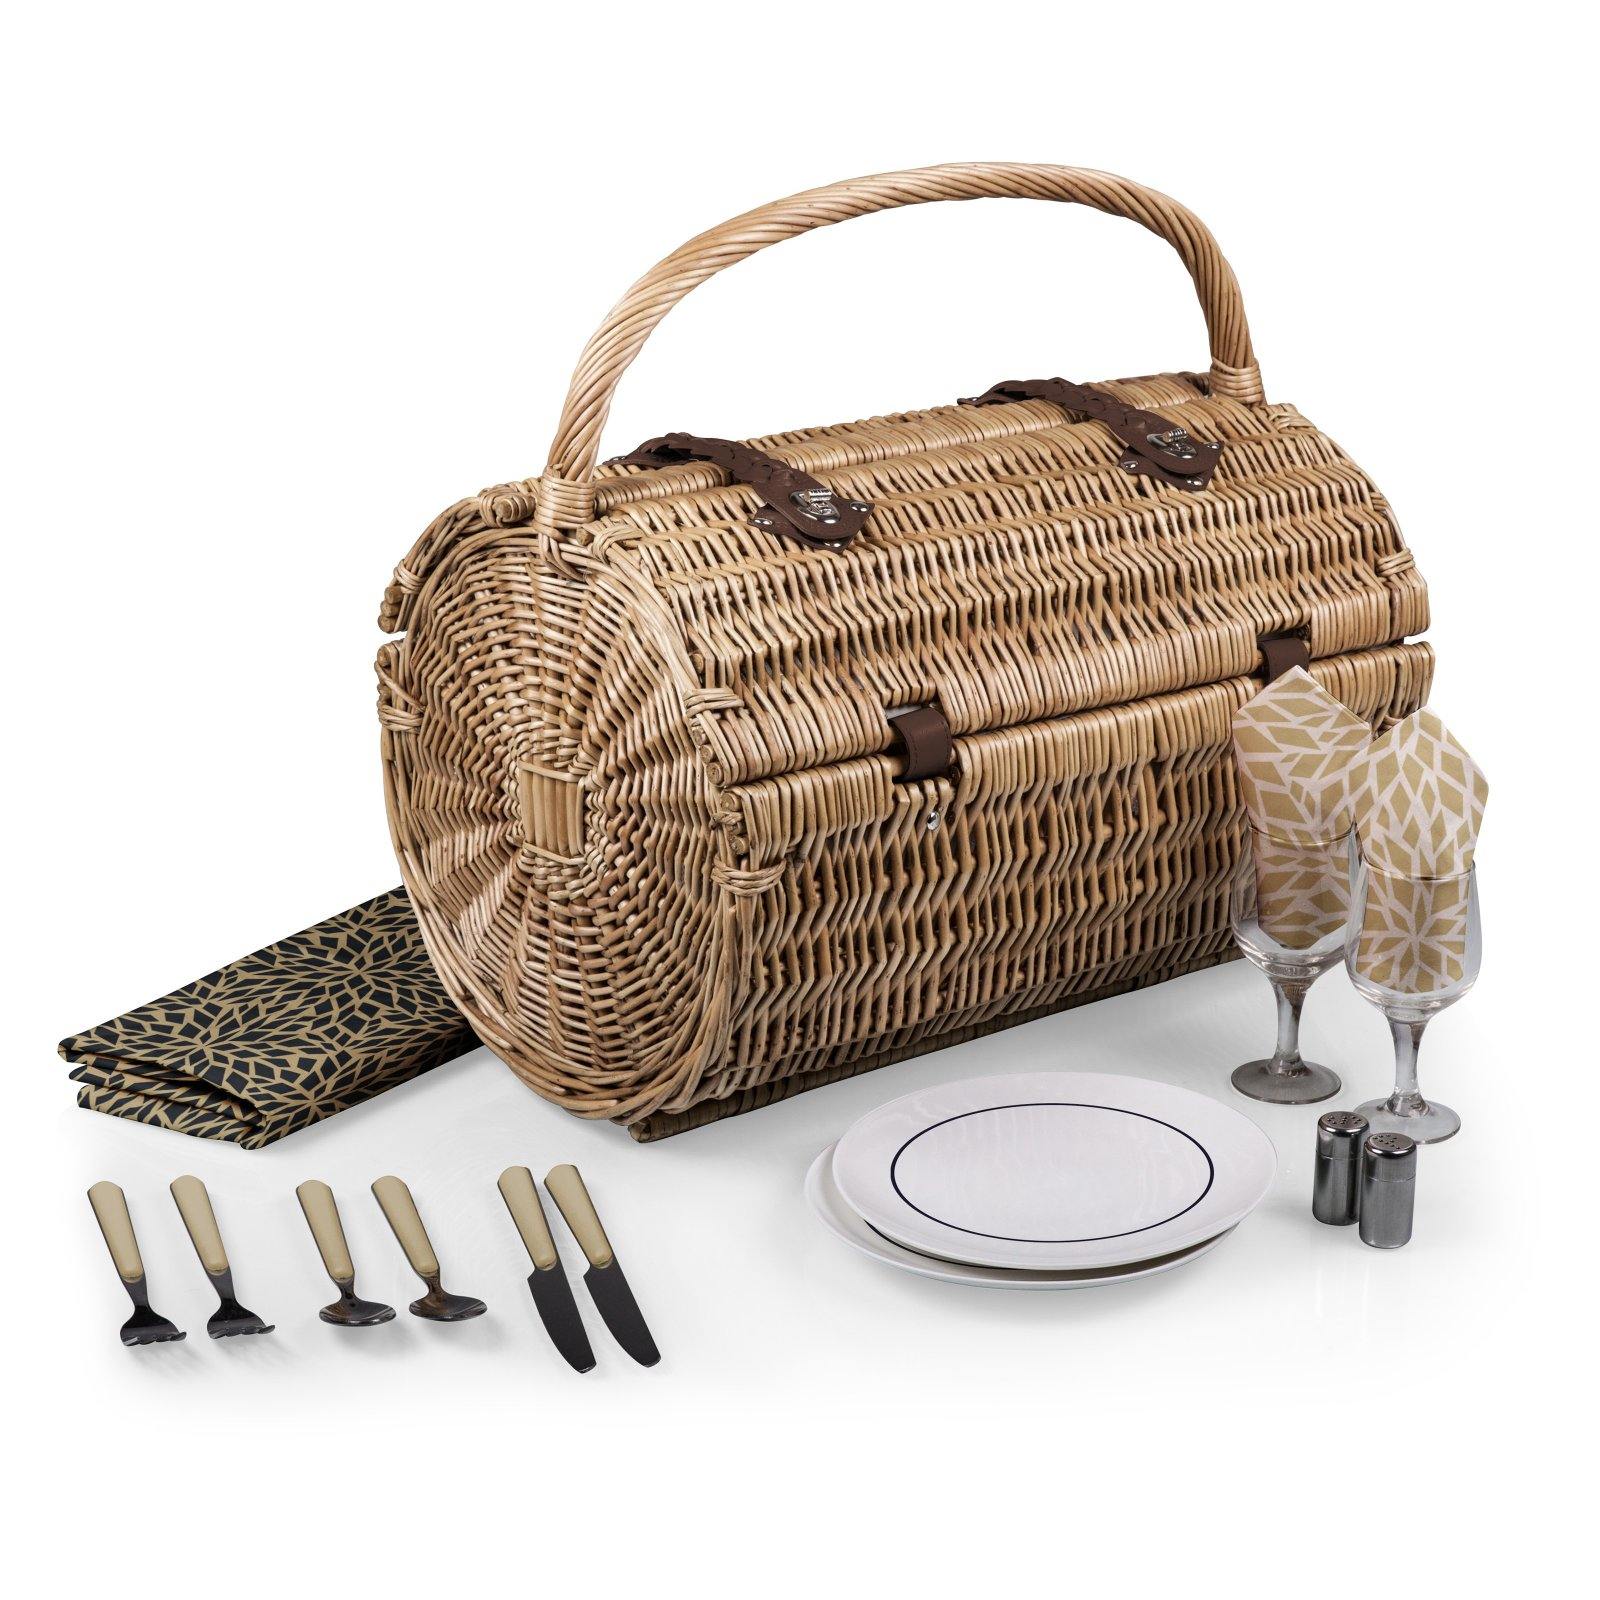 Picnic Time Watermelon Barrel Picnic Basket by Overstock